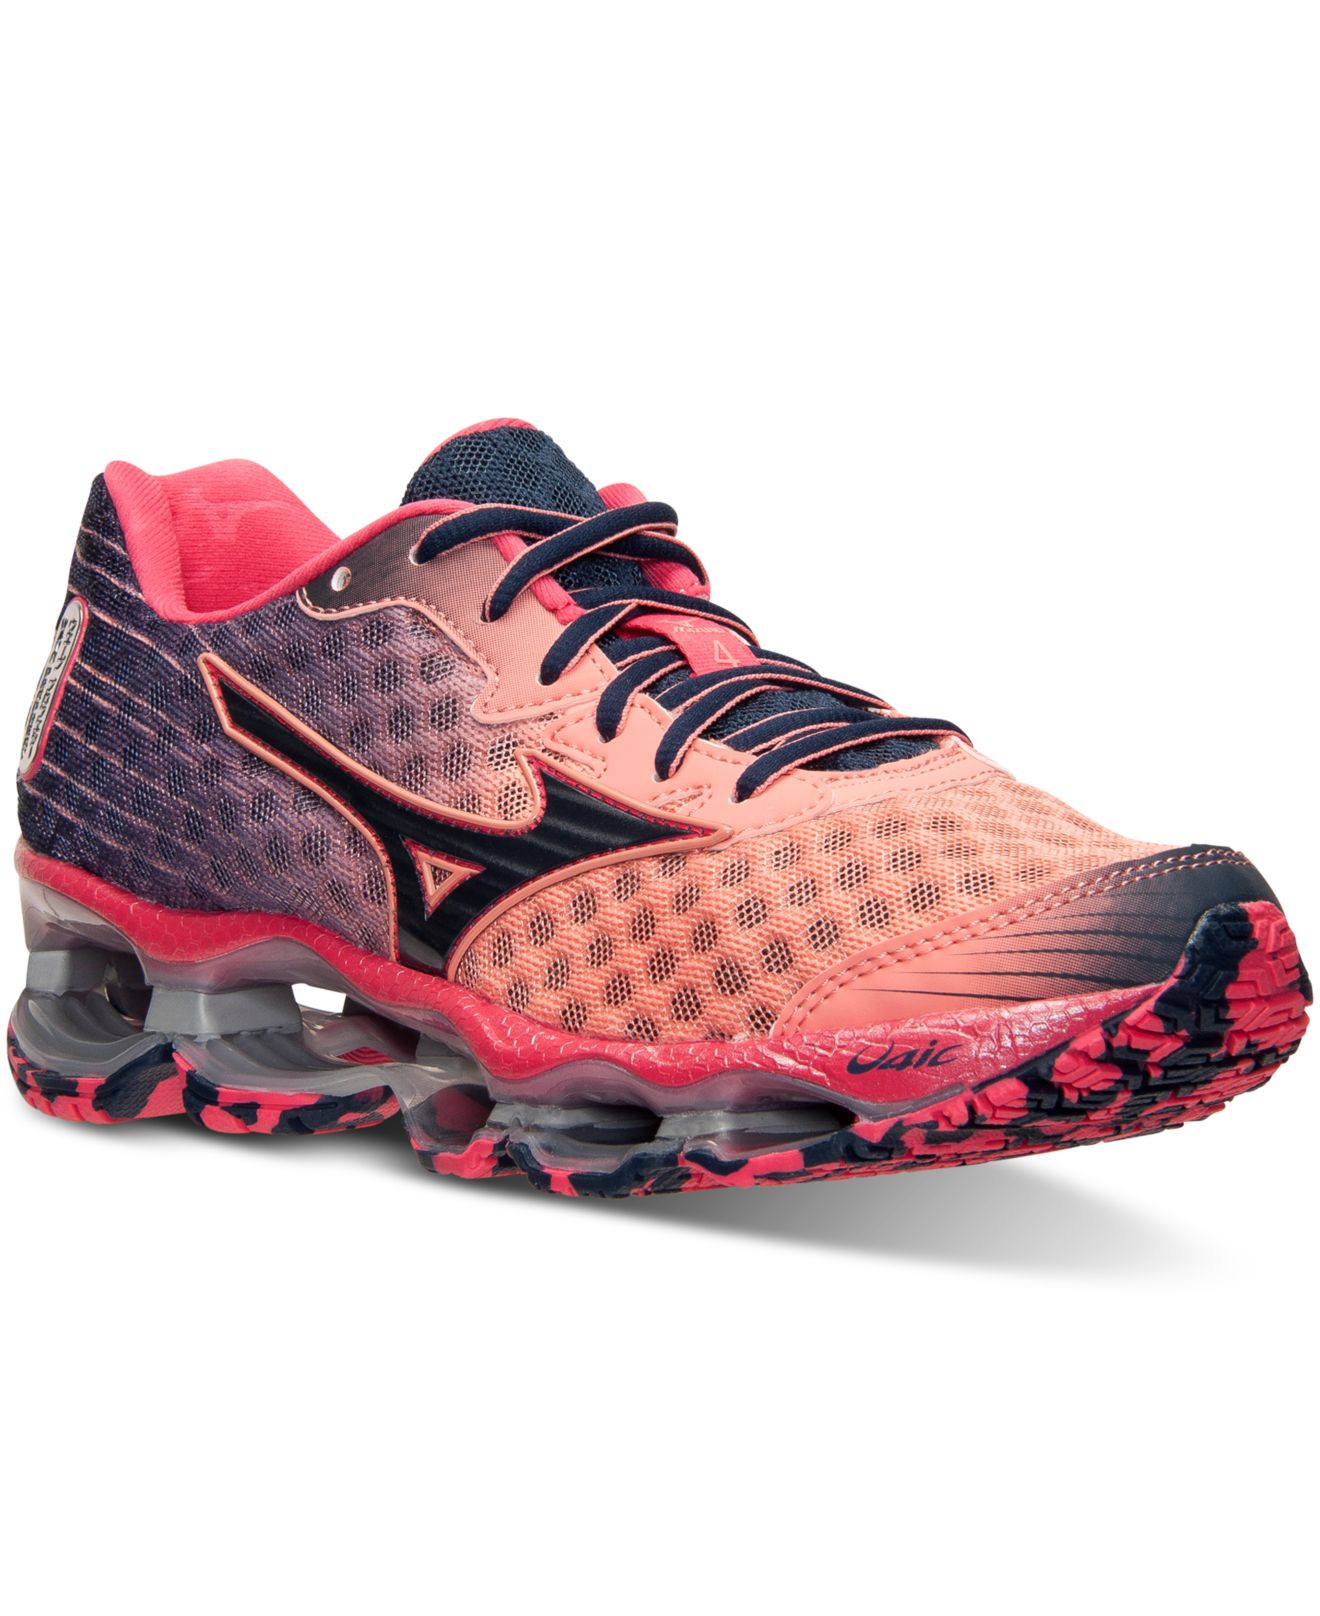 more photos aaa8a fdf70 Mizuno Women S Wave Prophecy 4 Running Sneakers From Finish Line in ...